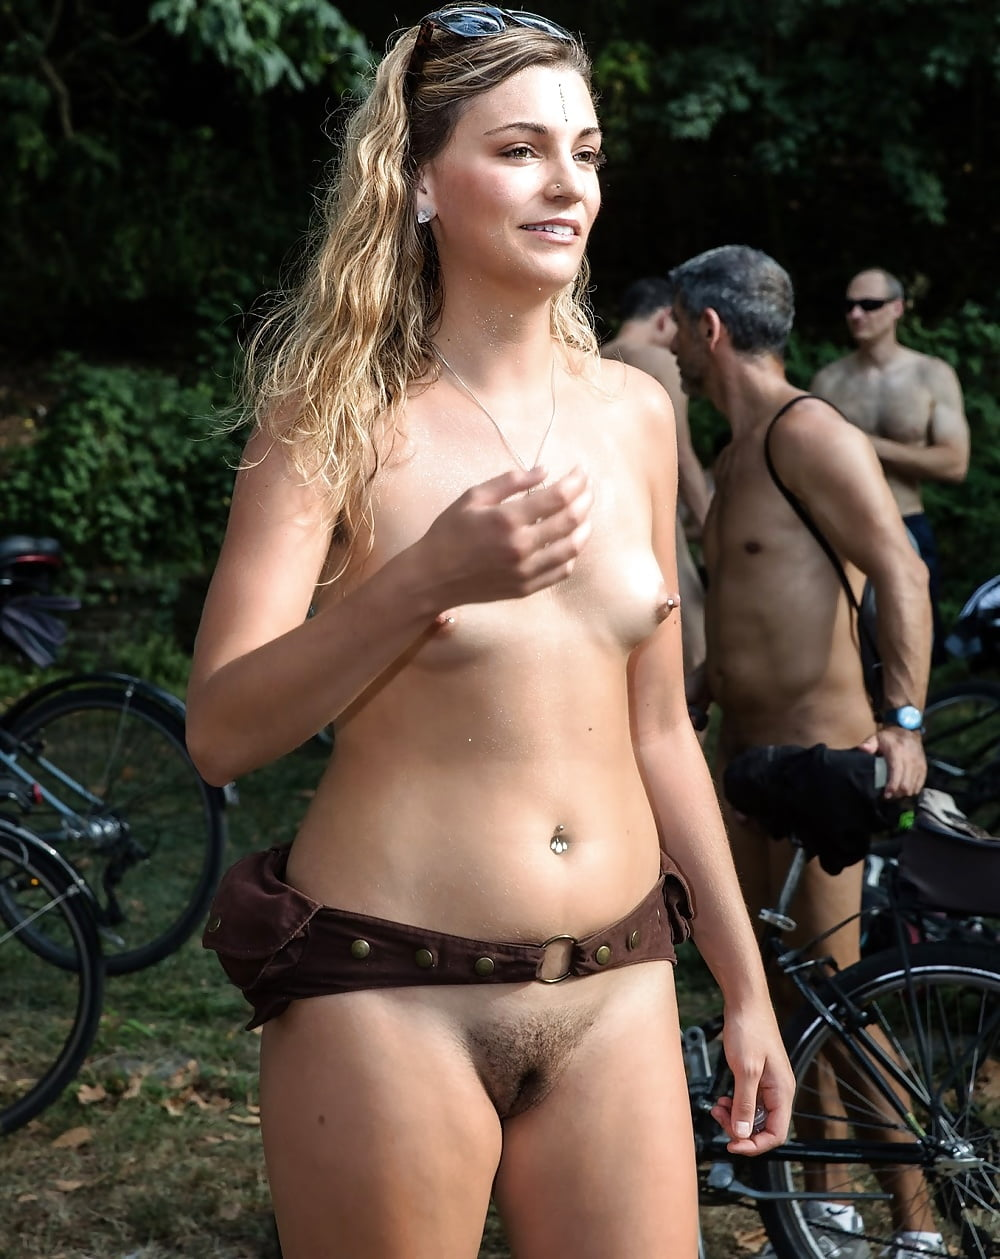 girl-from-the-real-world-naked